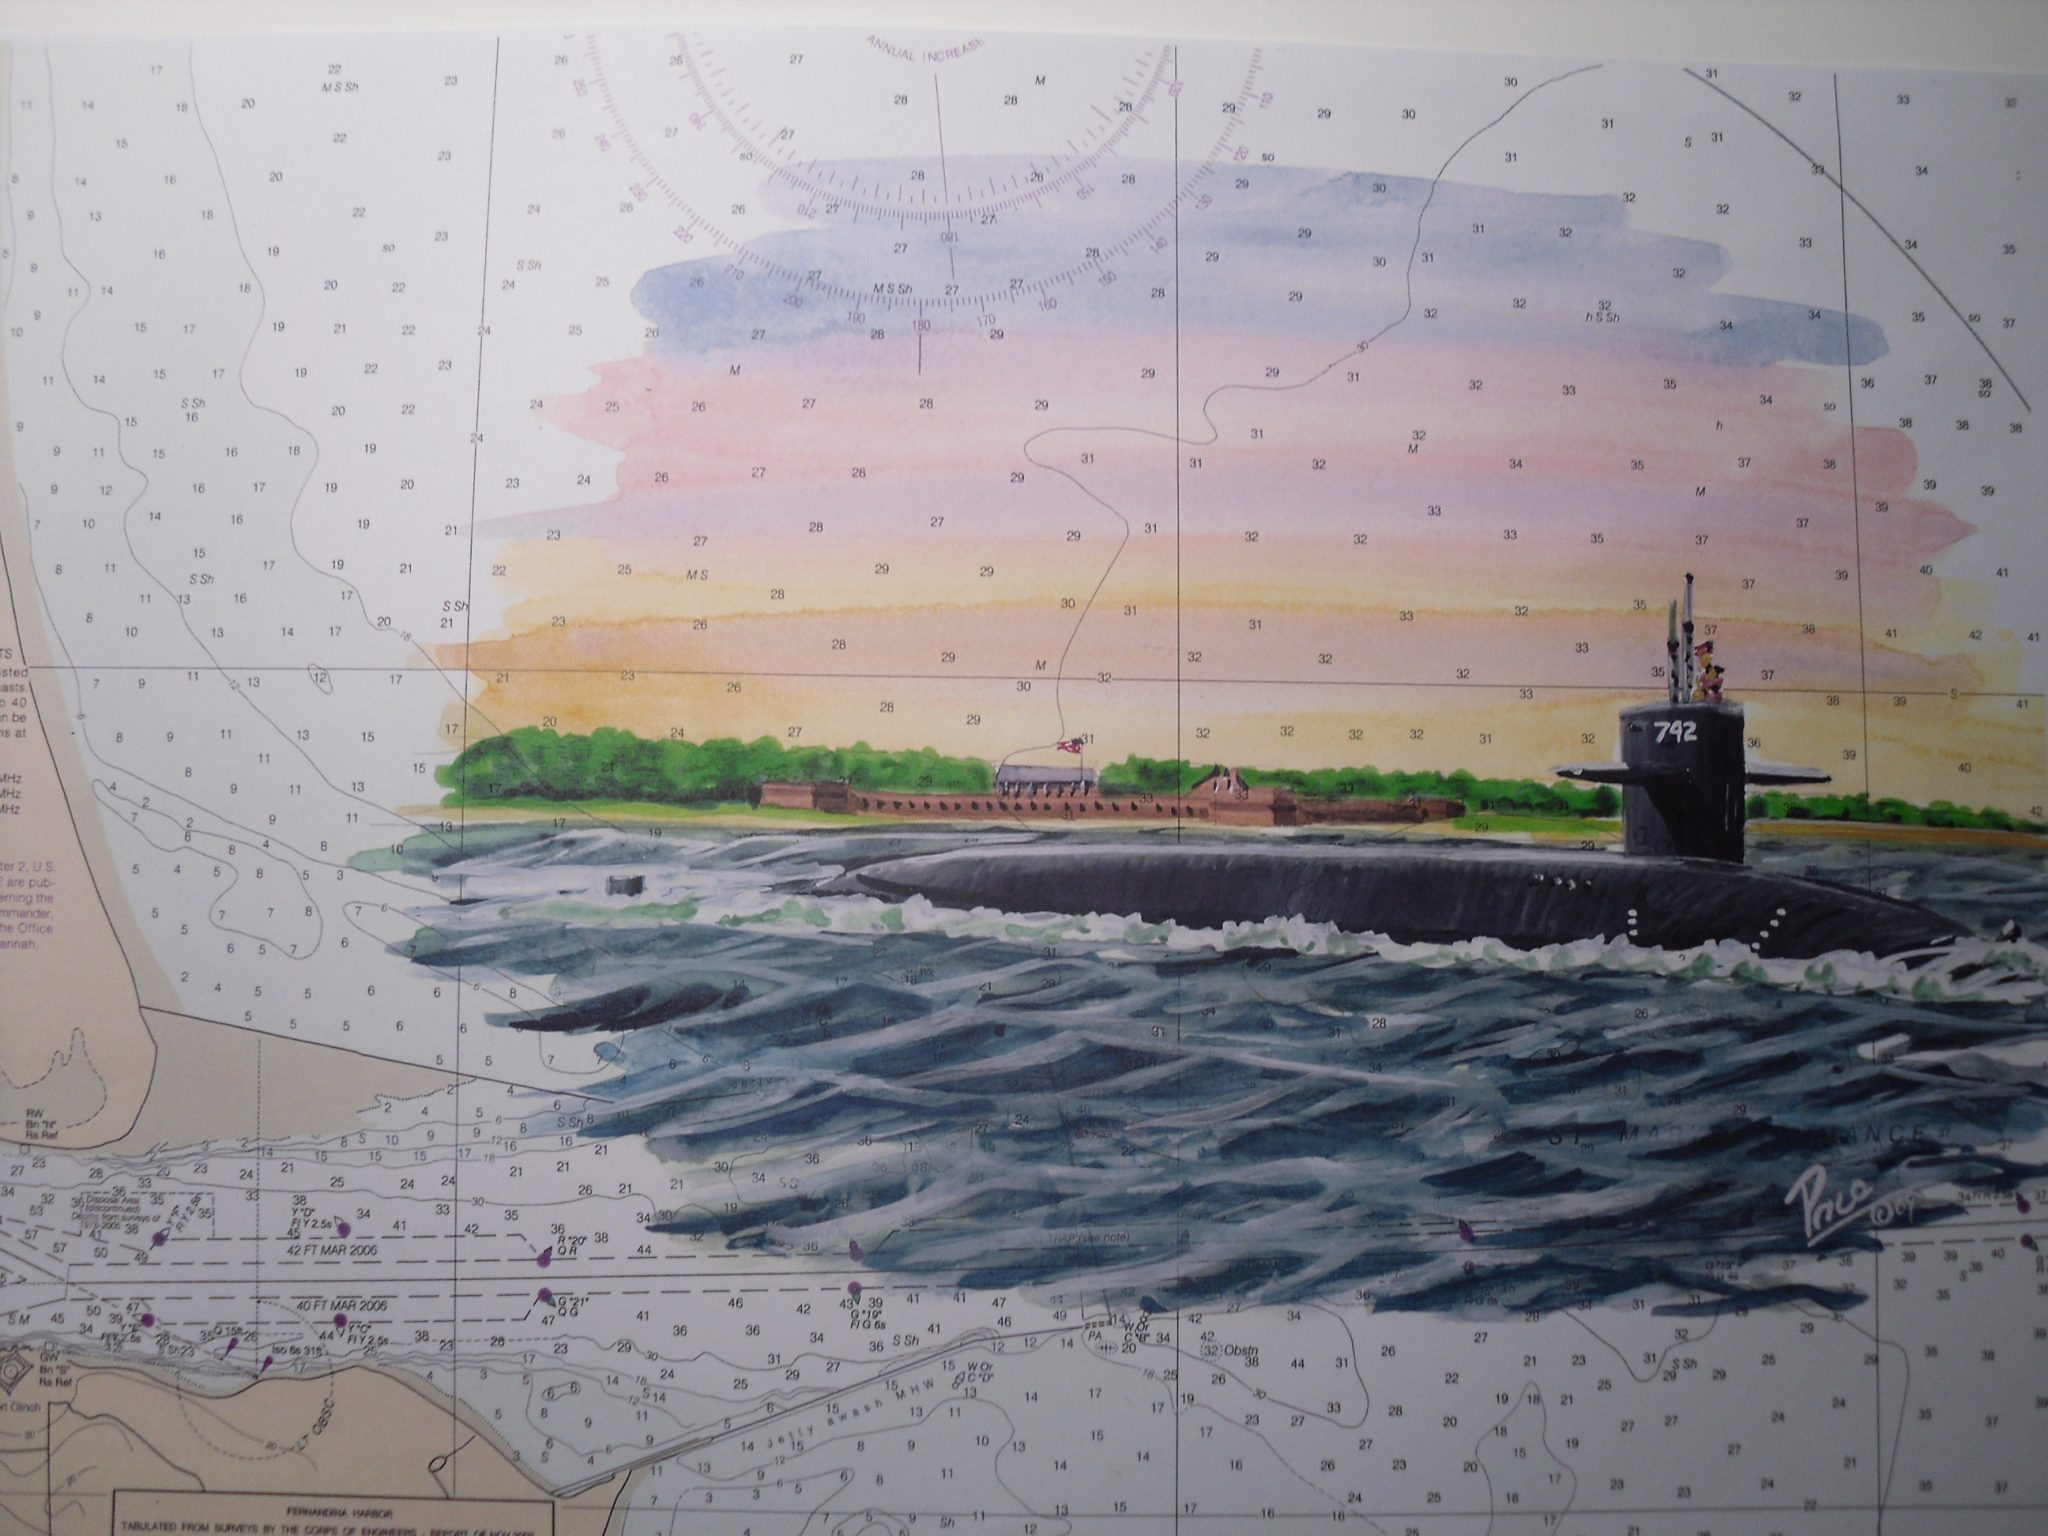 USS Wyoming SSBN 742 Kings Bay Georgia - Submarine Art by Daniel Price